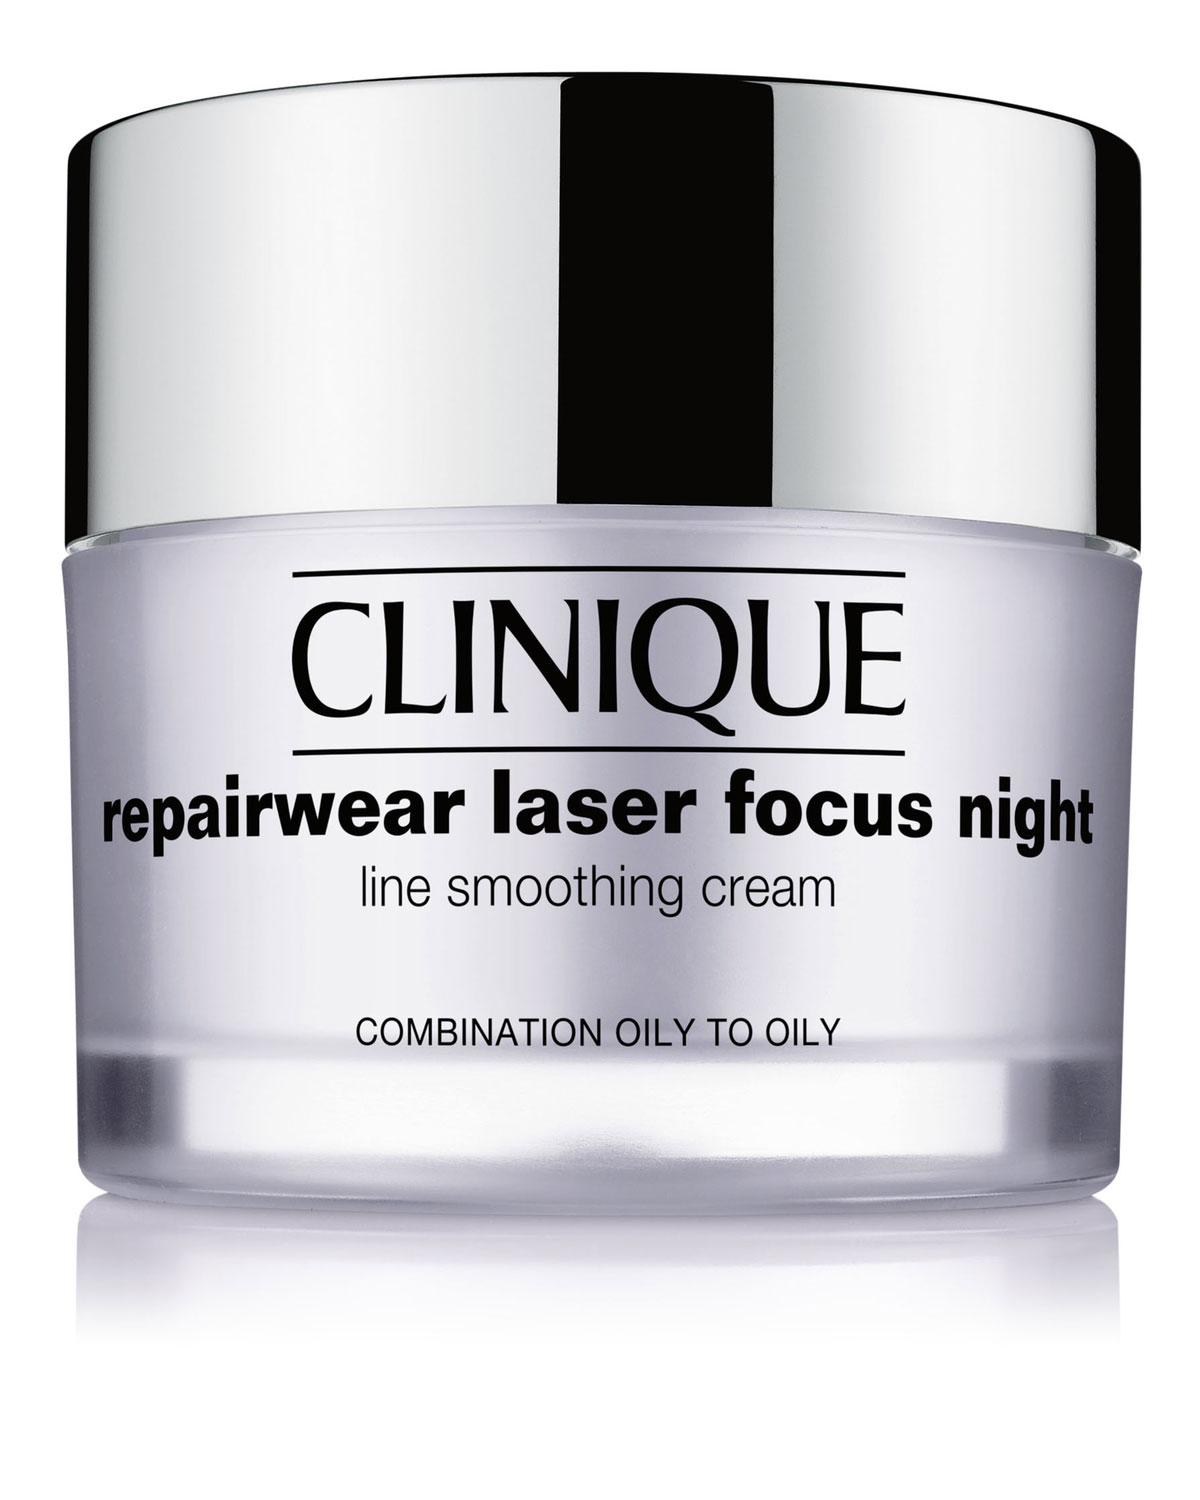 Repairwear Laser Focus Night Line Smoothing Cream For Combination Oily To Oily Skin 1.7 Oz/ 50 Ml